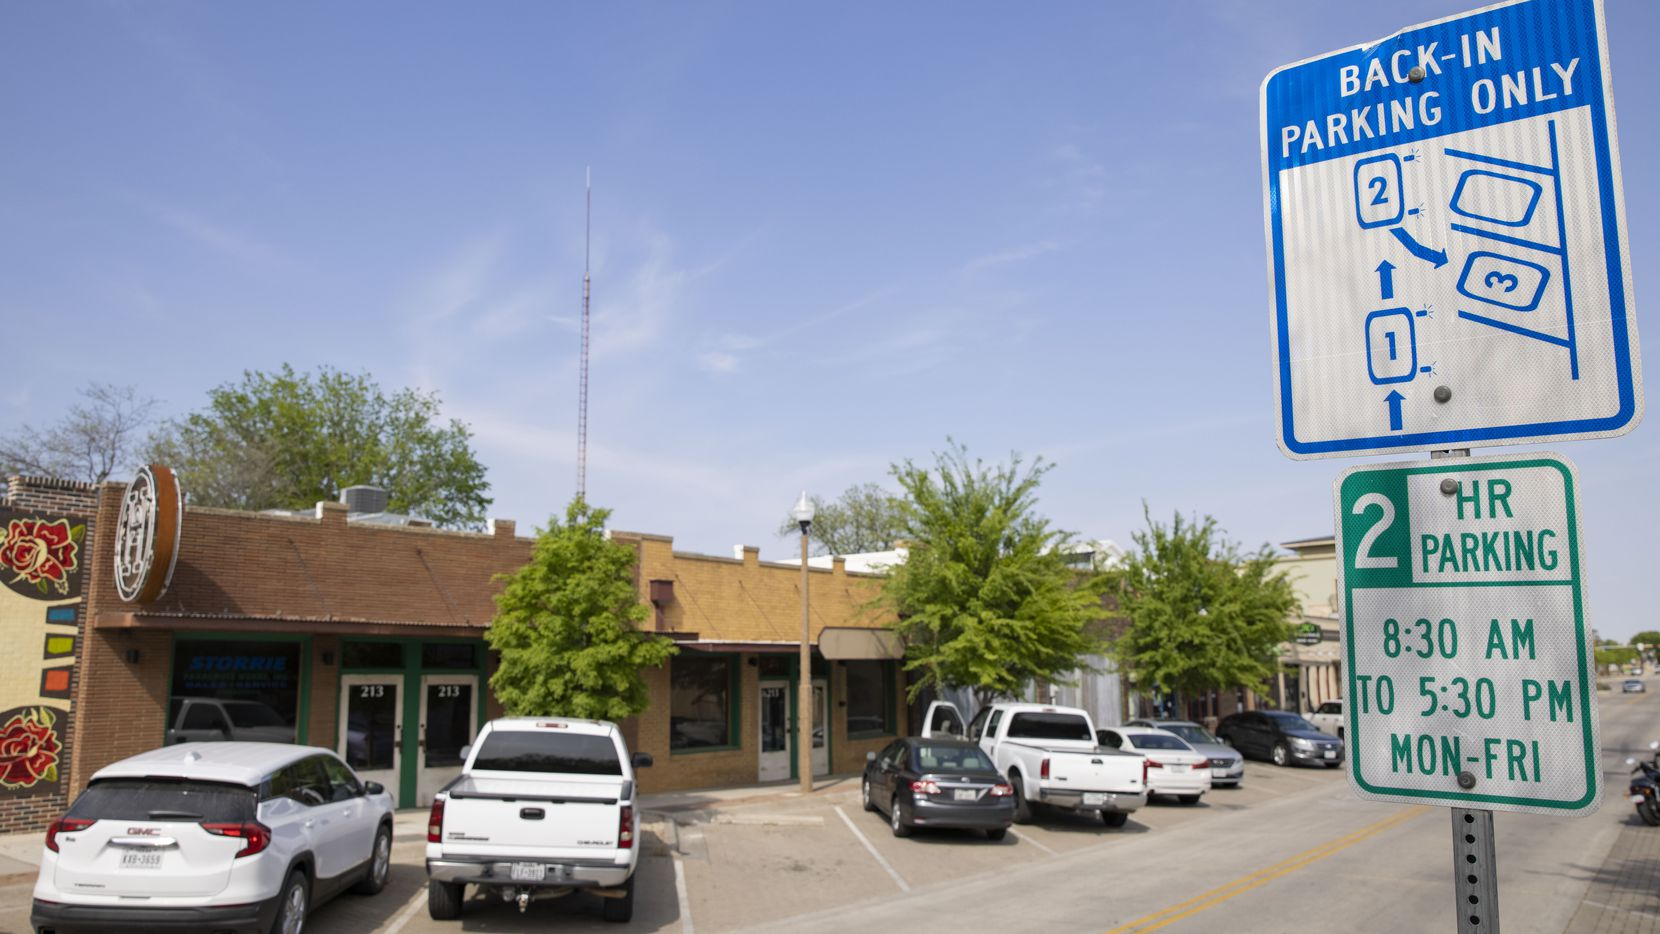 A back-in parking only sign on Hickory Street in Denton on Tuesday, Apr. 9, 2021.